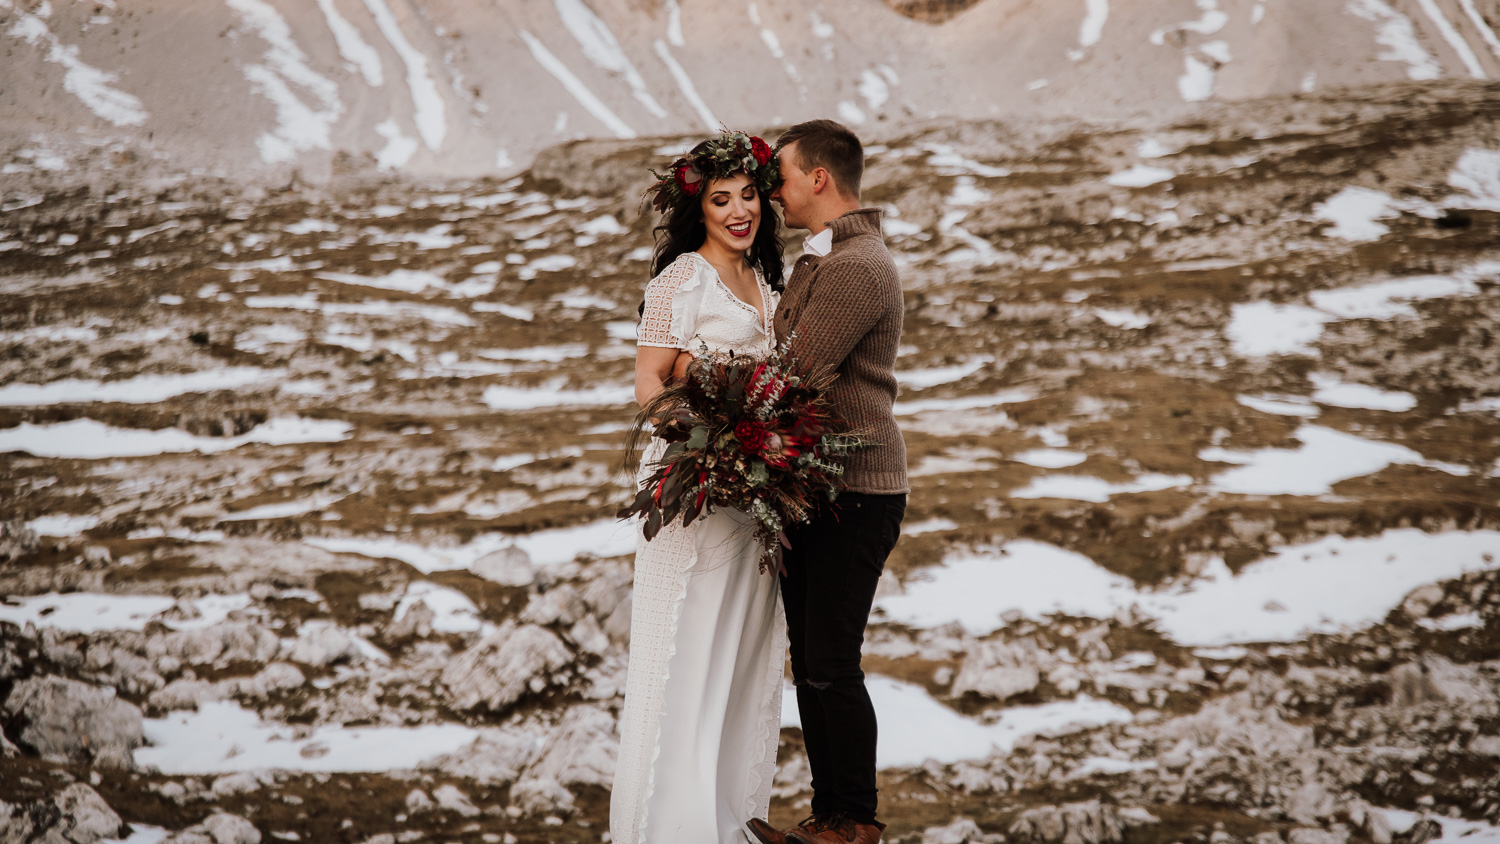 Dolomites Wedding Photographer 37